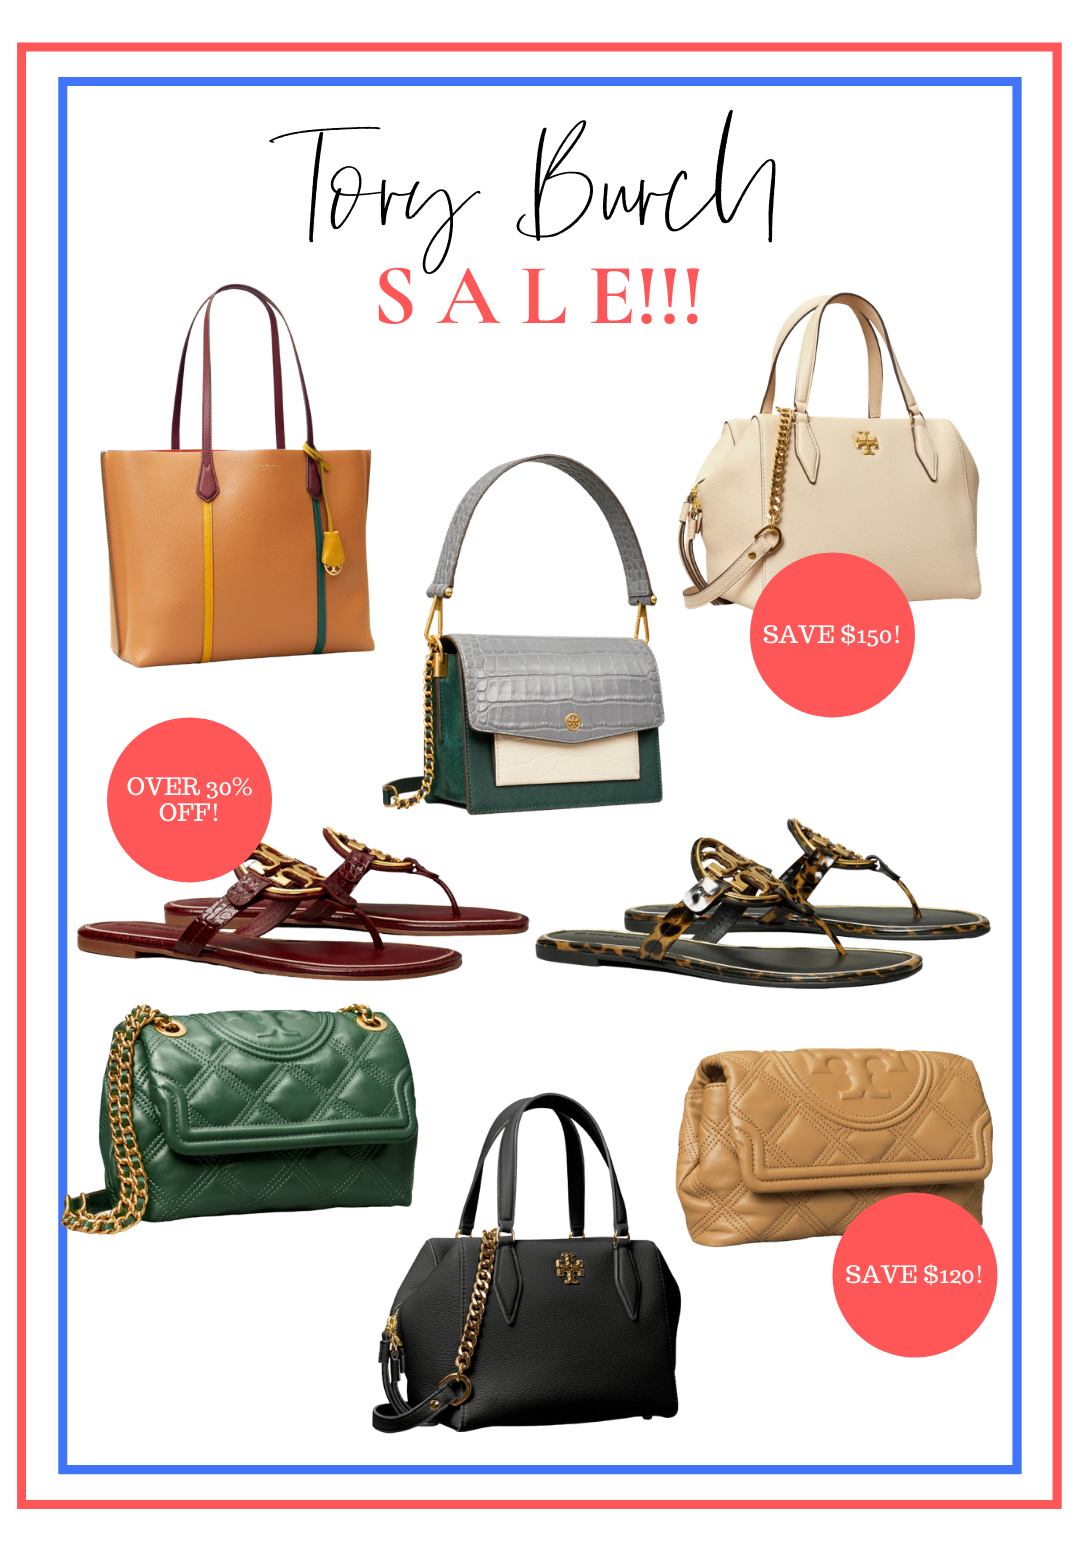 All The Best President's Day Sales By Alabama Sale + Lifestyle blogger, Heather Brown // My Life Well Loved